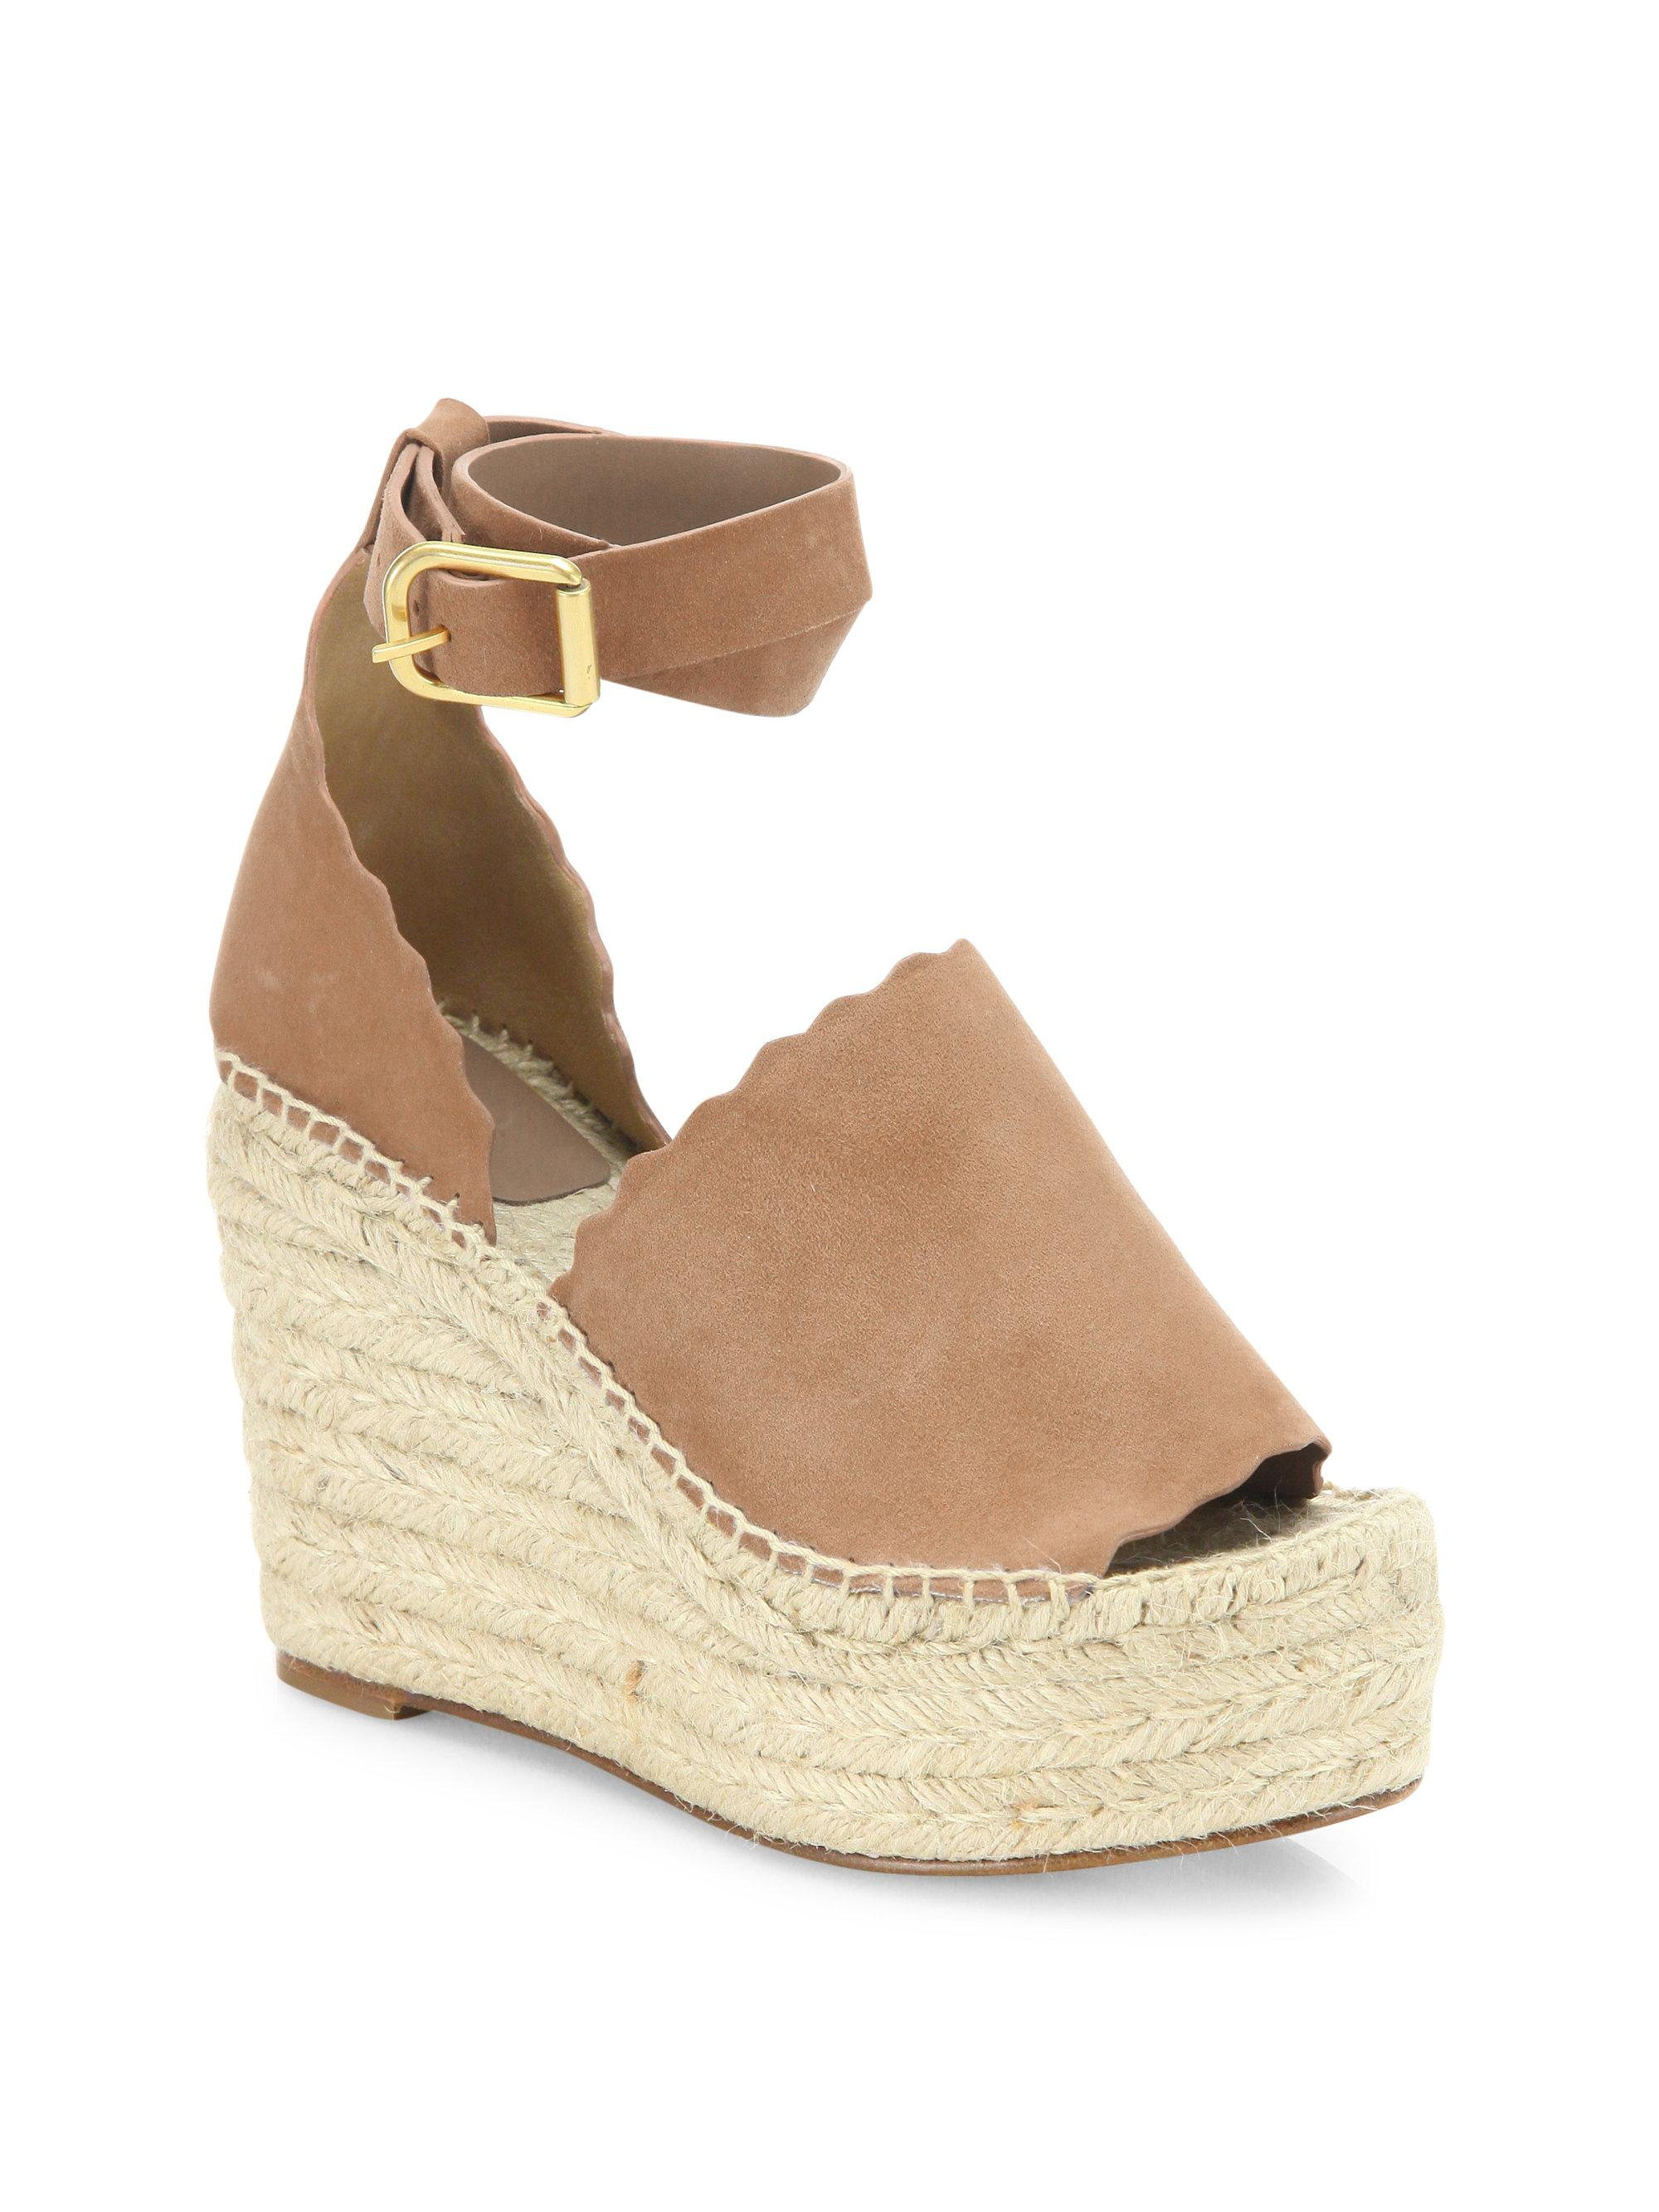 Chlo 233 Lauren Suede Ankle Strap Espadrille Wedge Sandals In